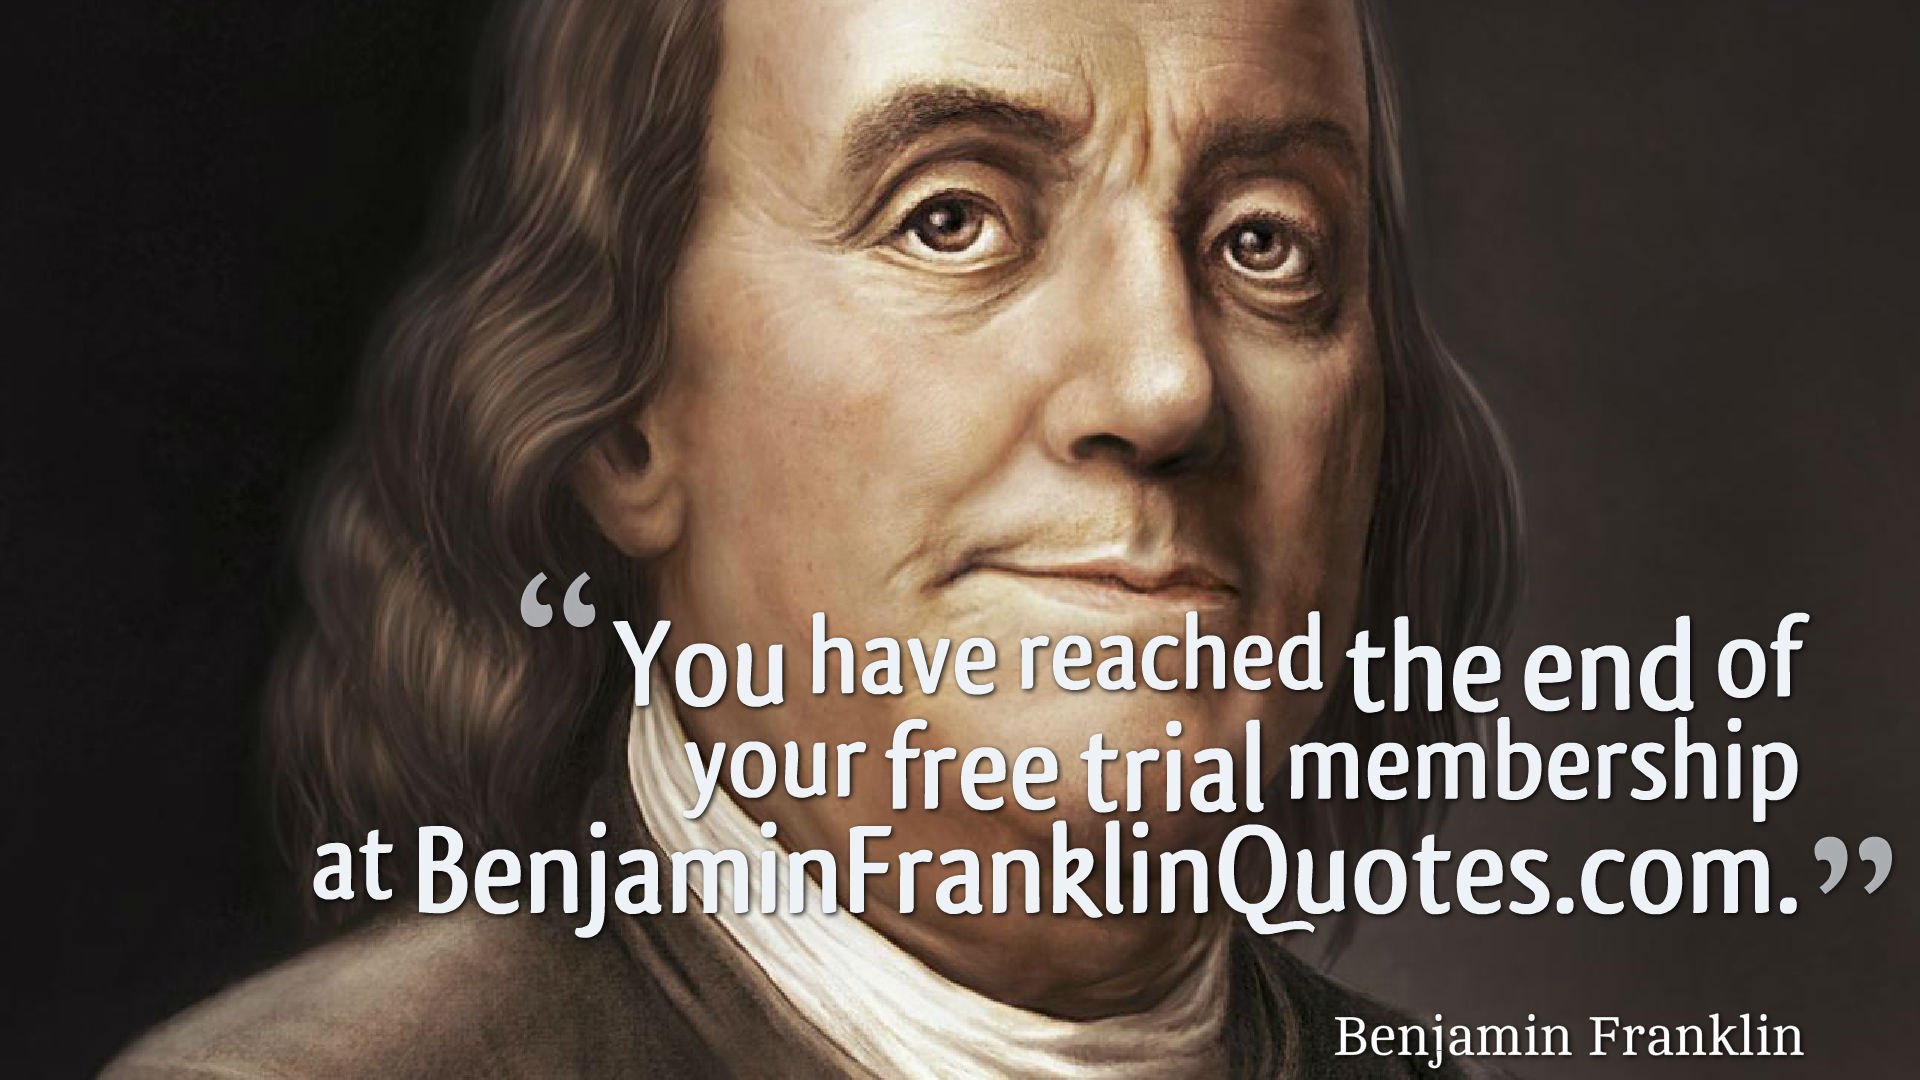 [image] Benjamin Franklin said it best